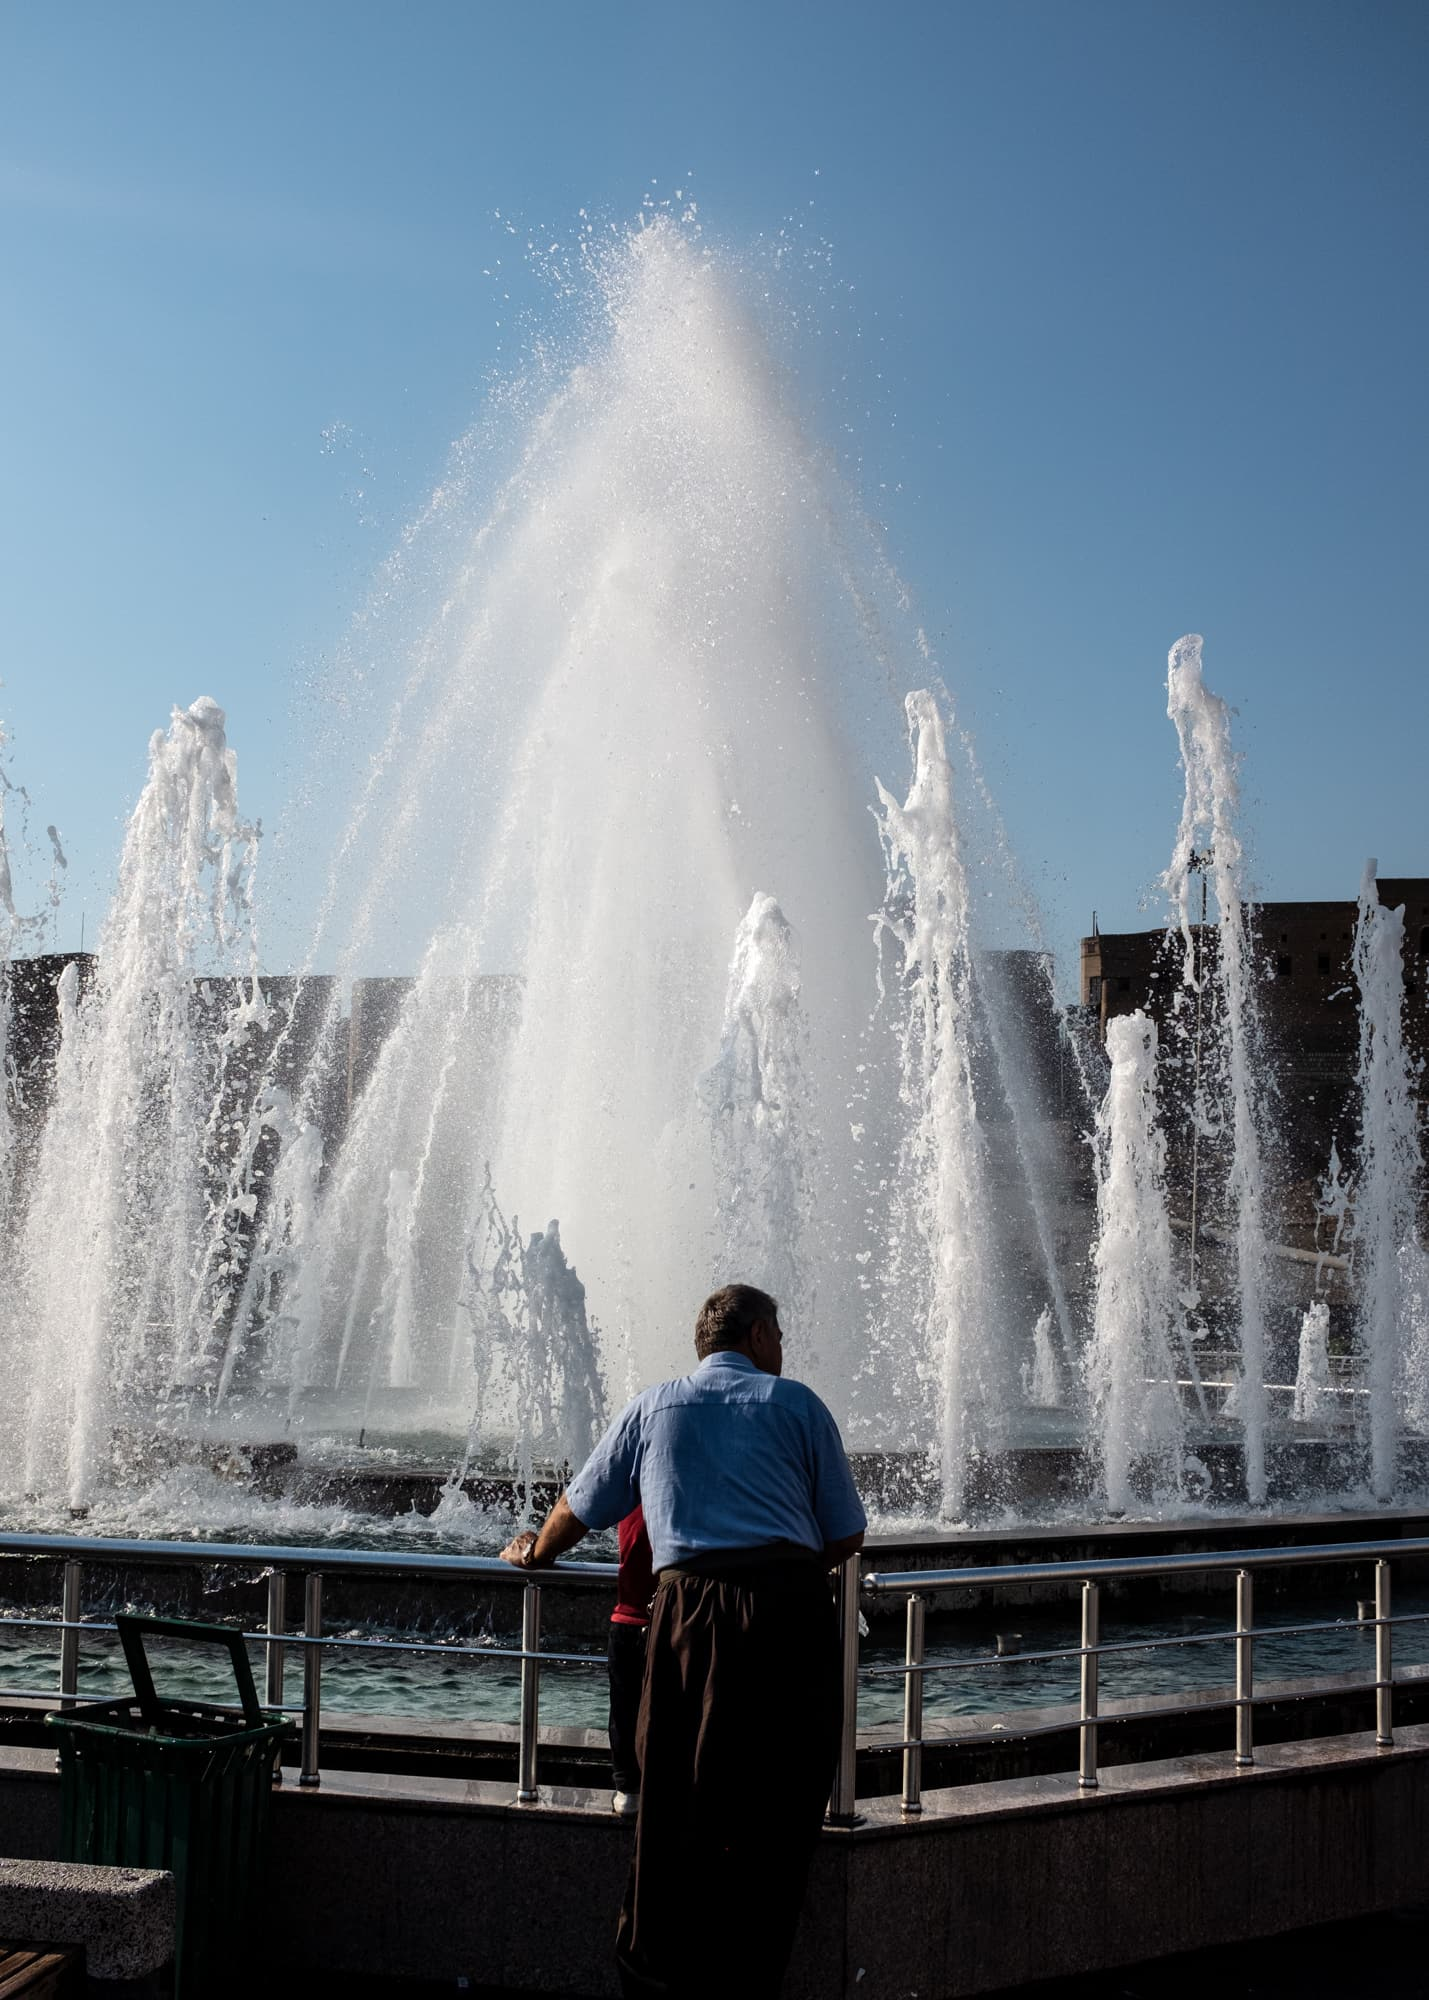 A man watches the water at a fountain with a boy in Erbil, Iraq, on Sept 3rd, 2019.